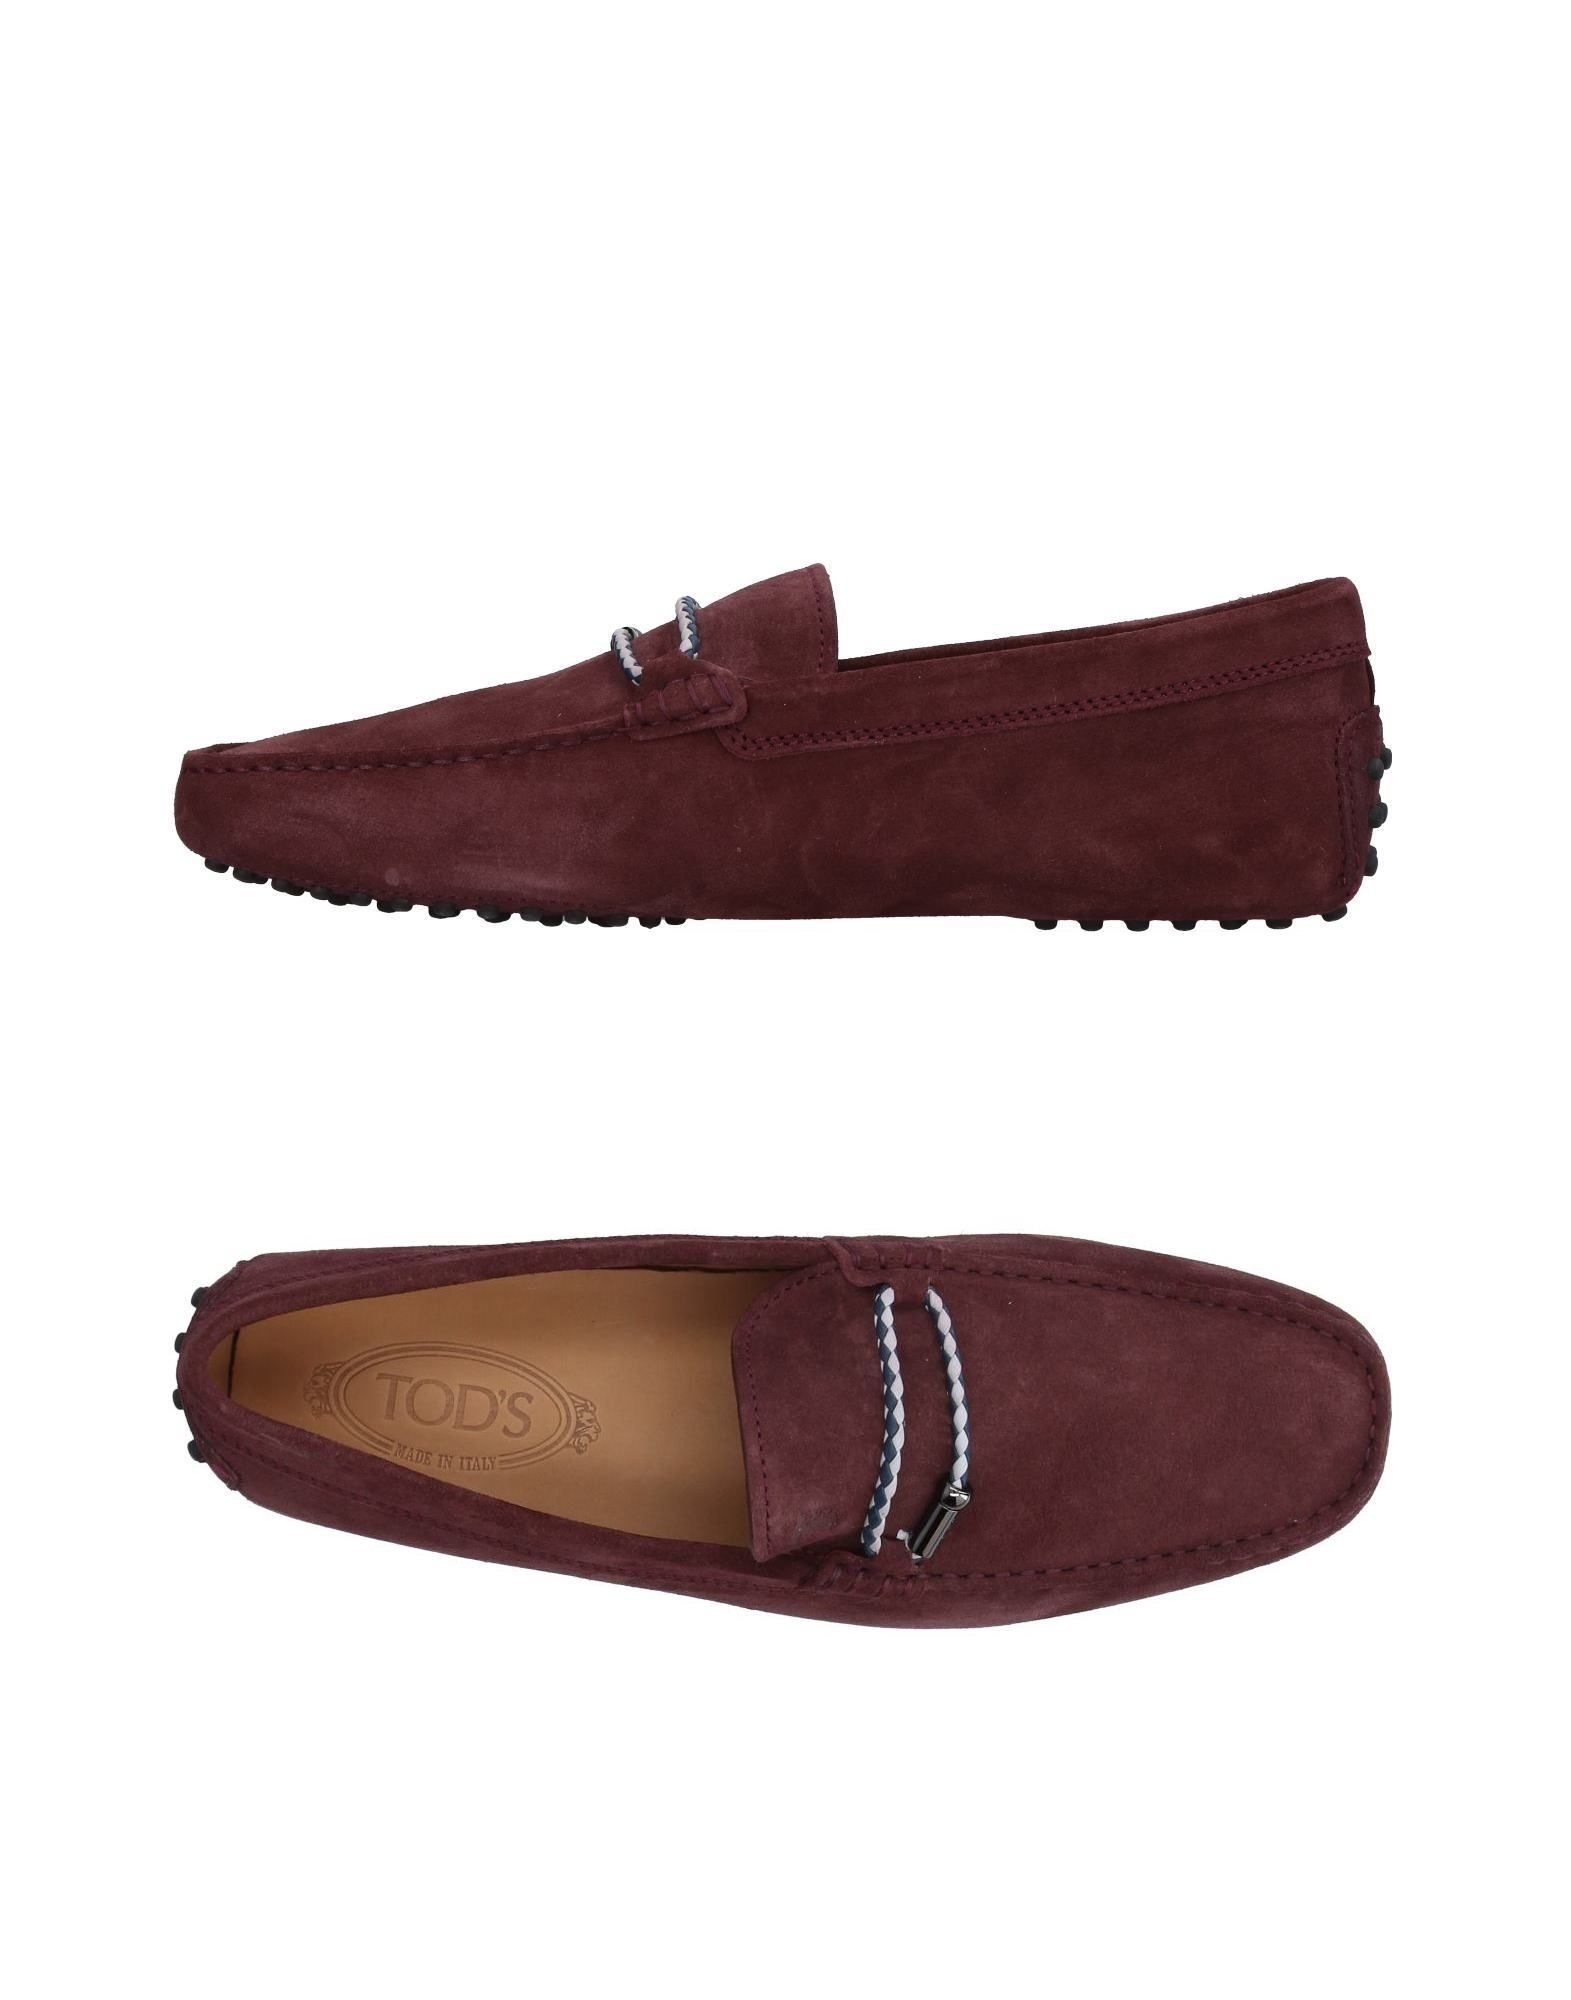 TOD'S Loafers Deep purple Men